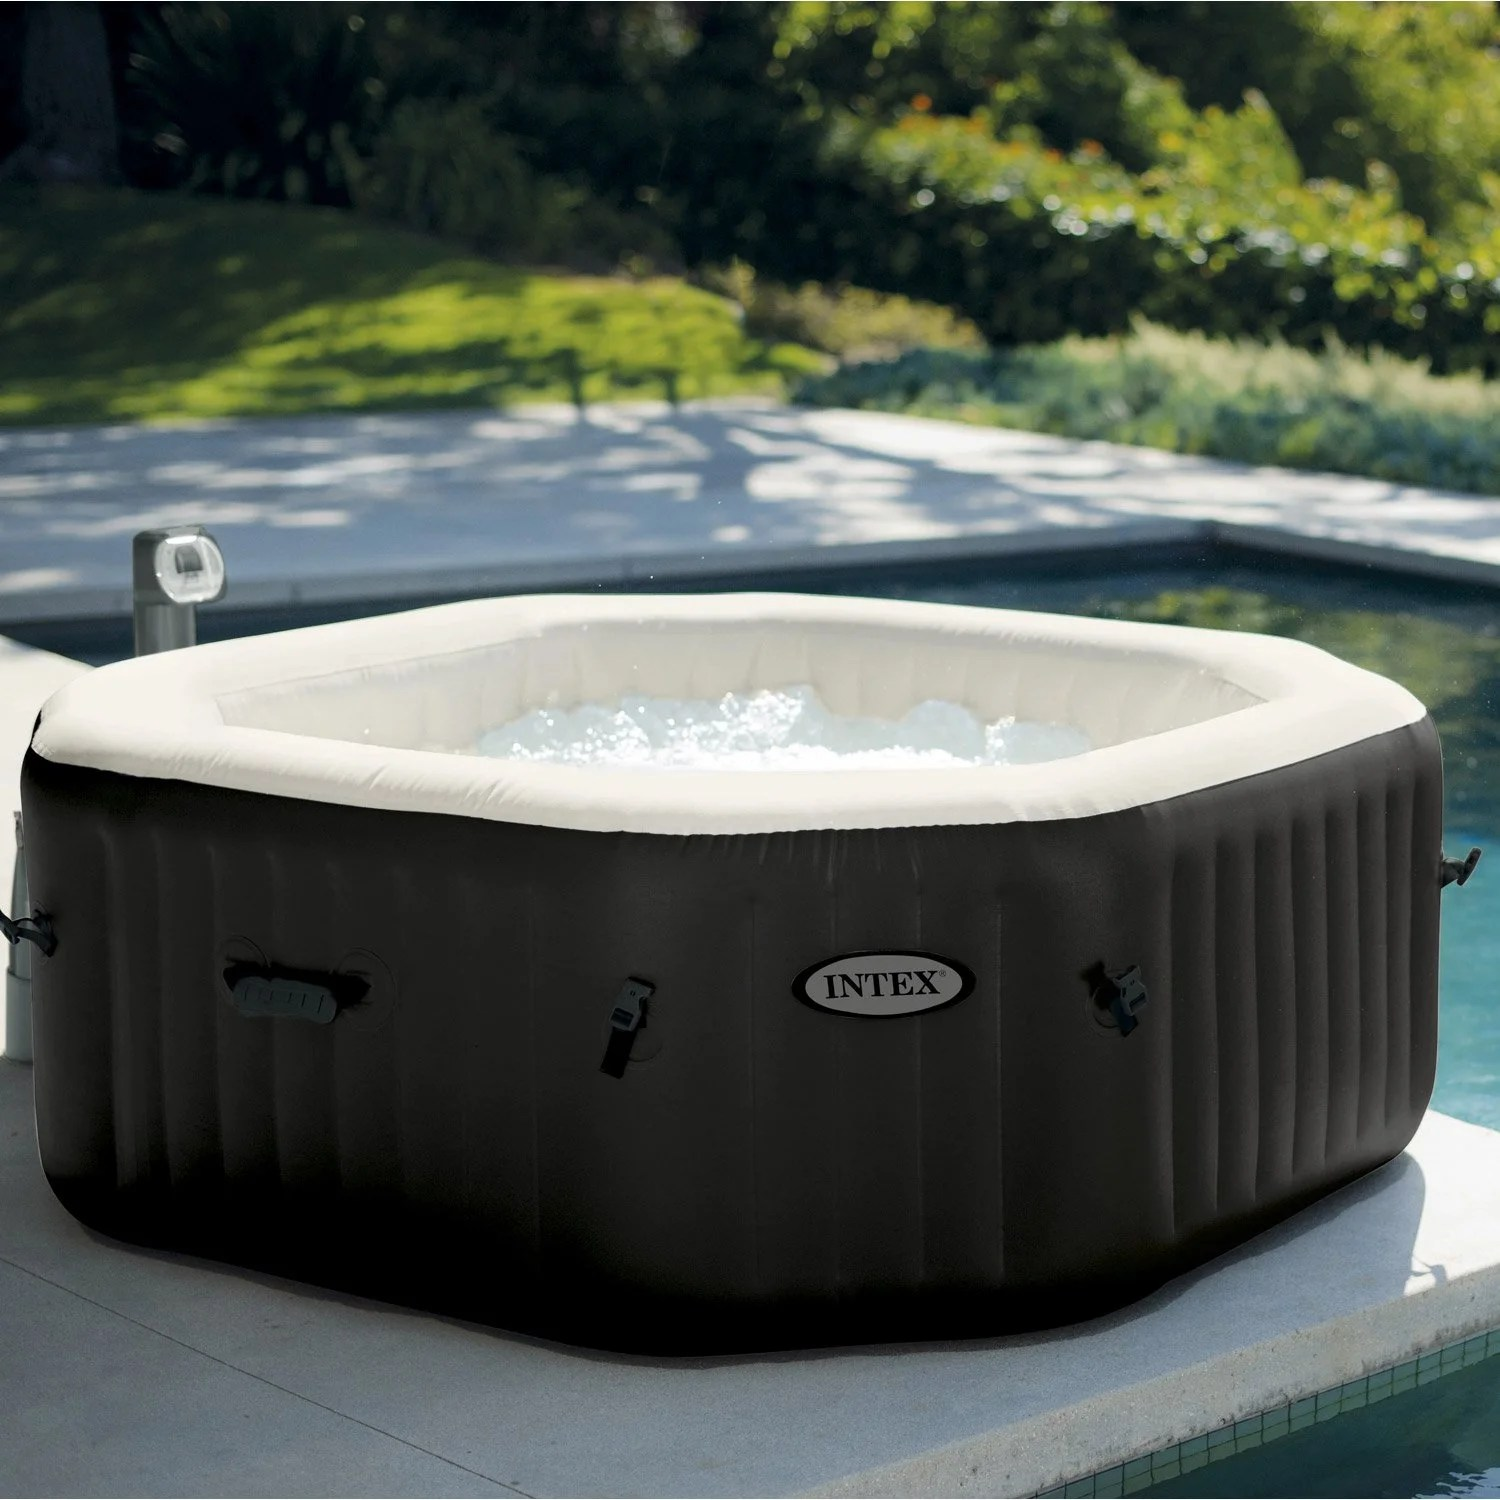 Spa Extérieur 2 Places Spa Gonflable Octogonale Intex 4 Places Assises Leroy